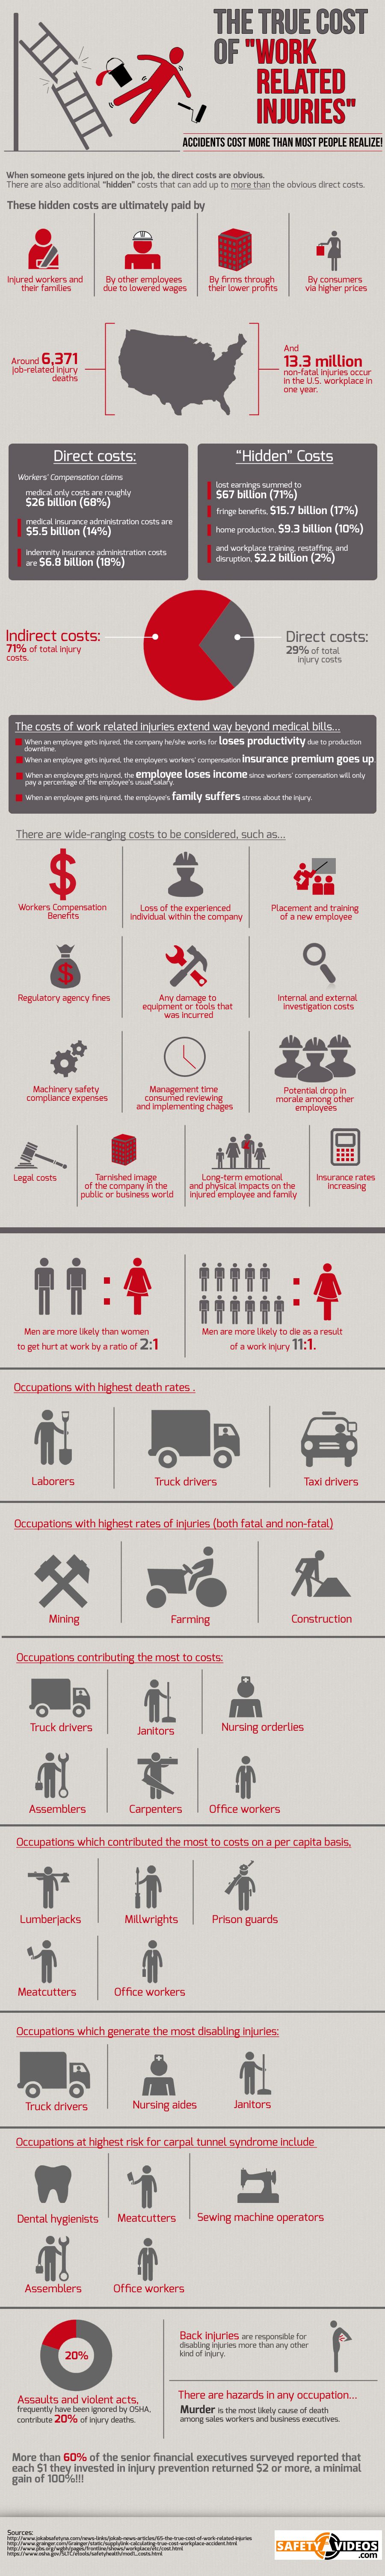 Cost of Work Related Injuries Infographic